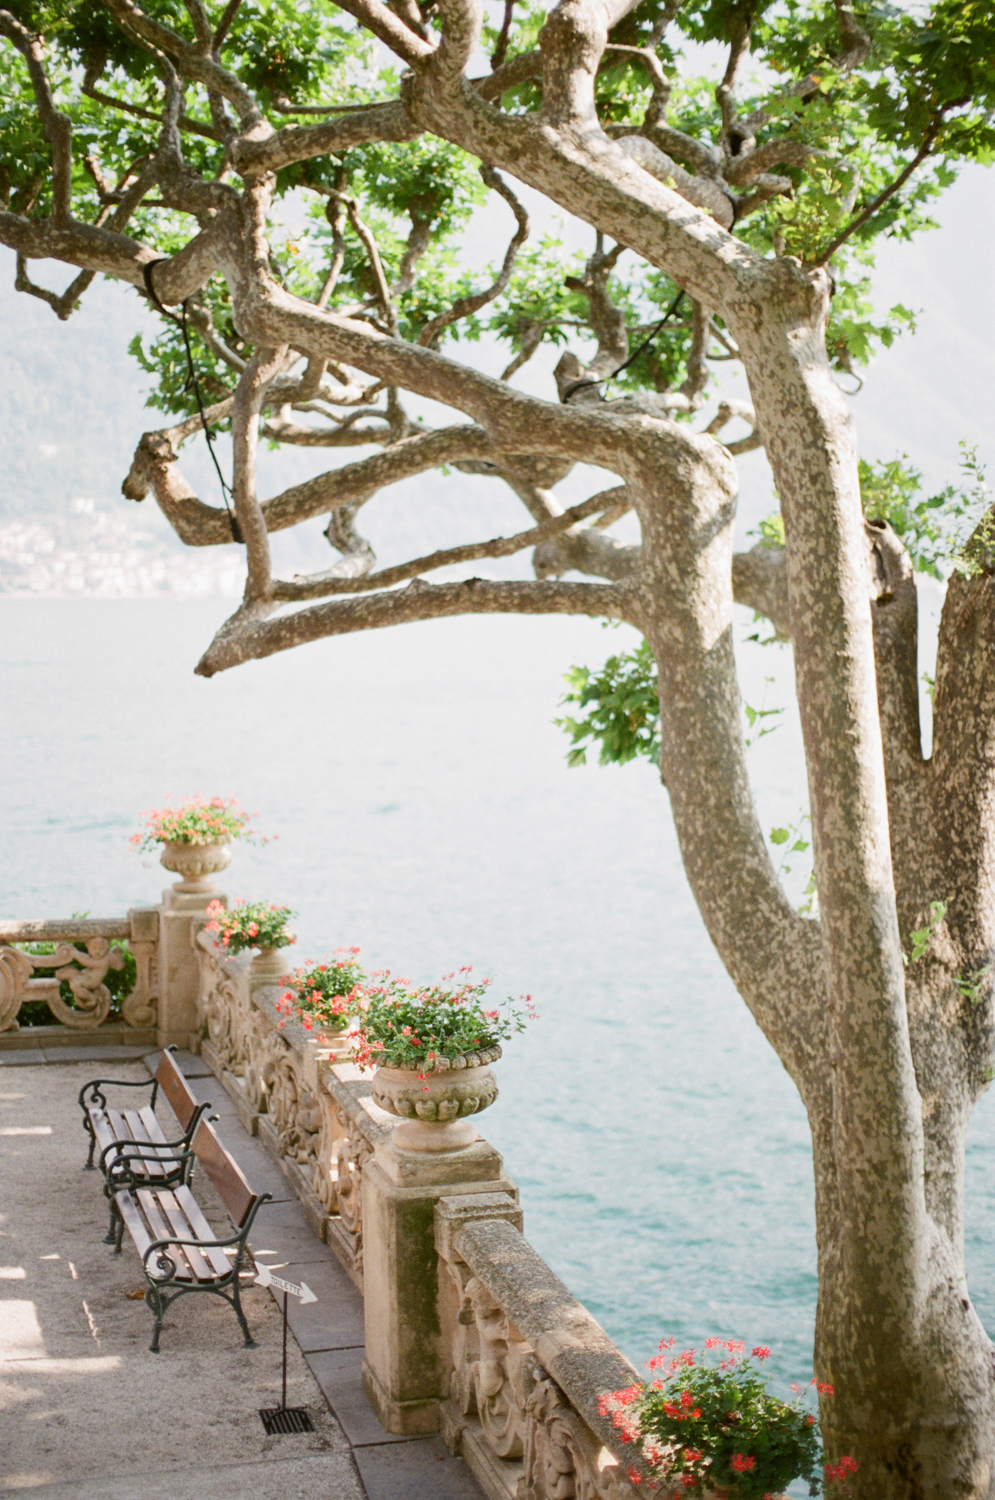 lake como villa balbaniello wedding photographer_23.JPG